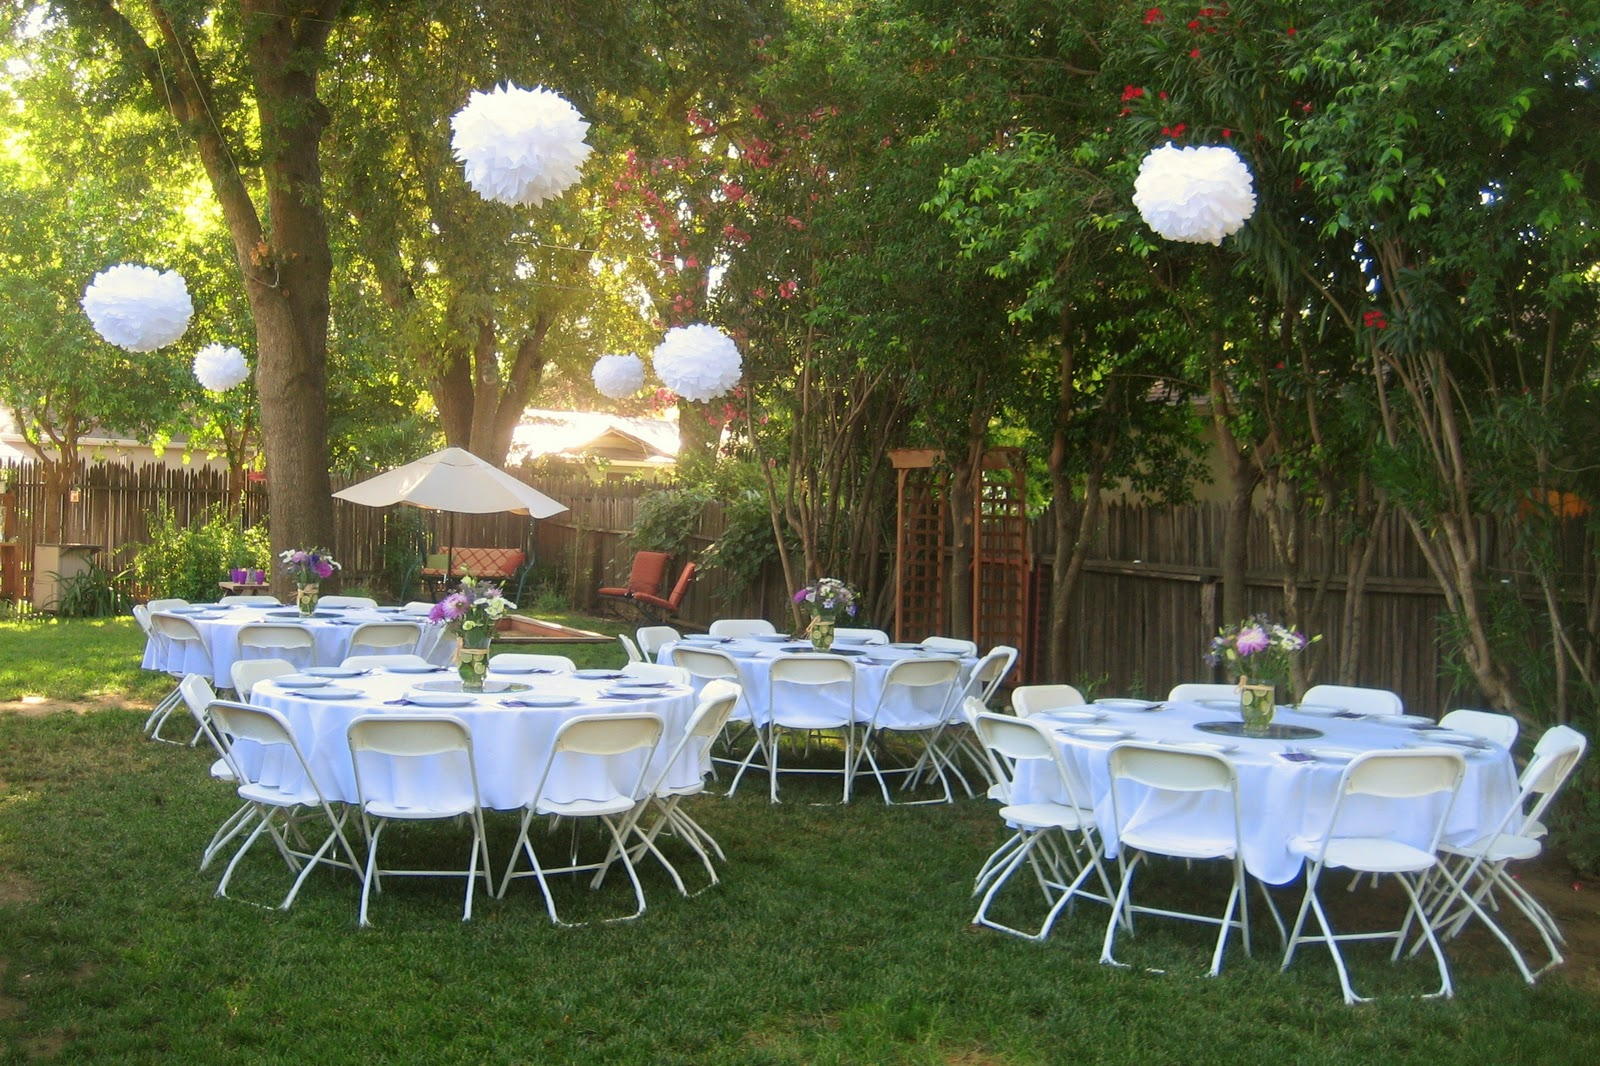 Unique Backyard Party Ideas : resting place for Completed Projects Backyard Bridal Shower